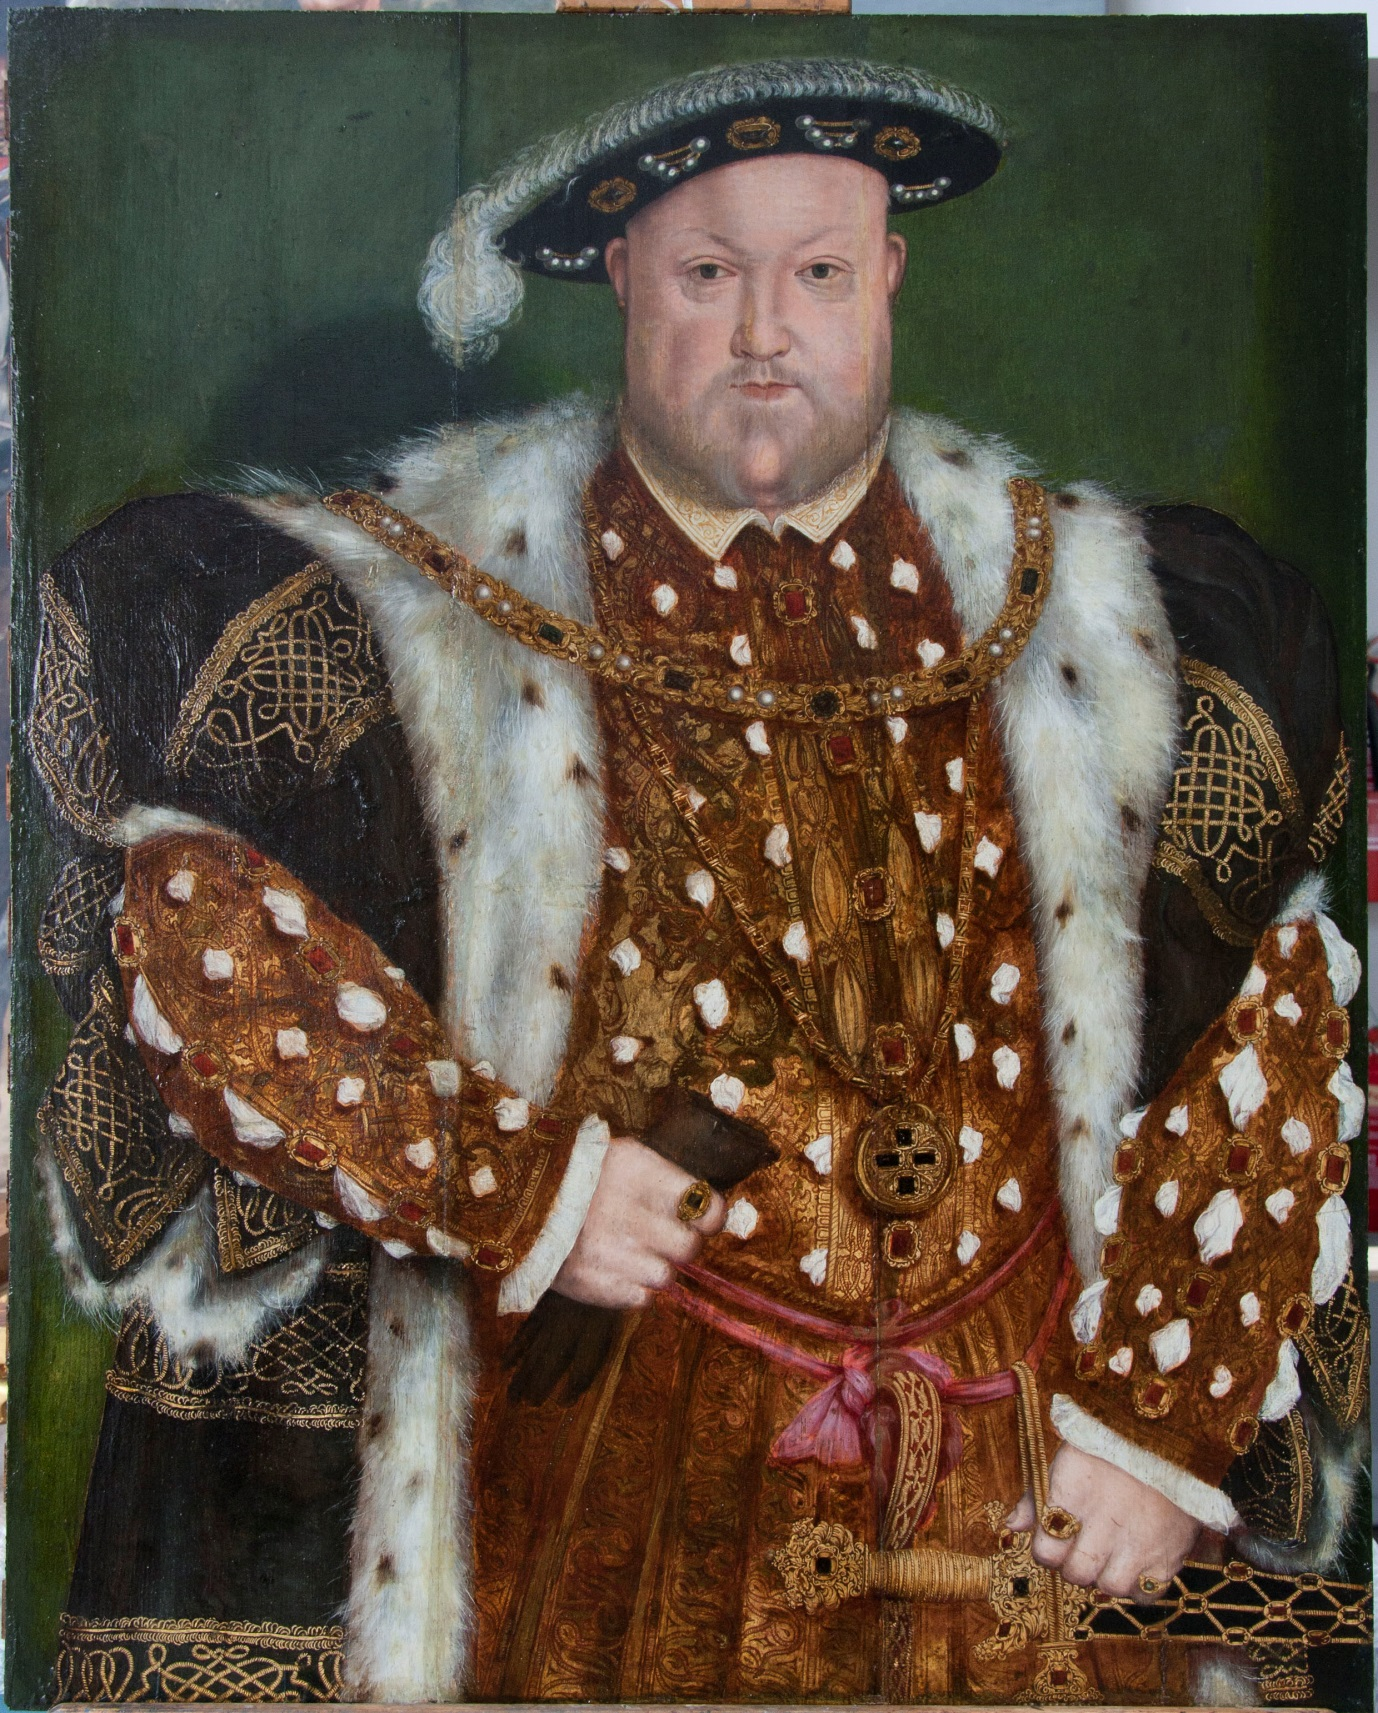 A Portrait of King Henry VIII at the Victoria Art Gallery Bath